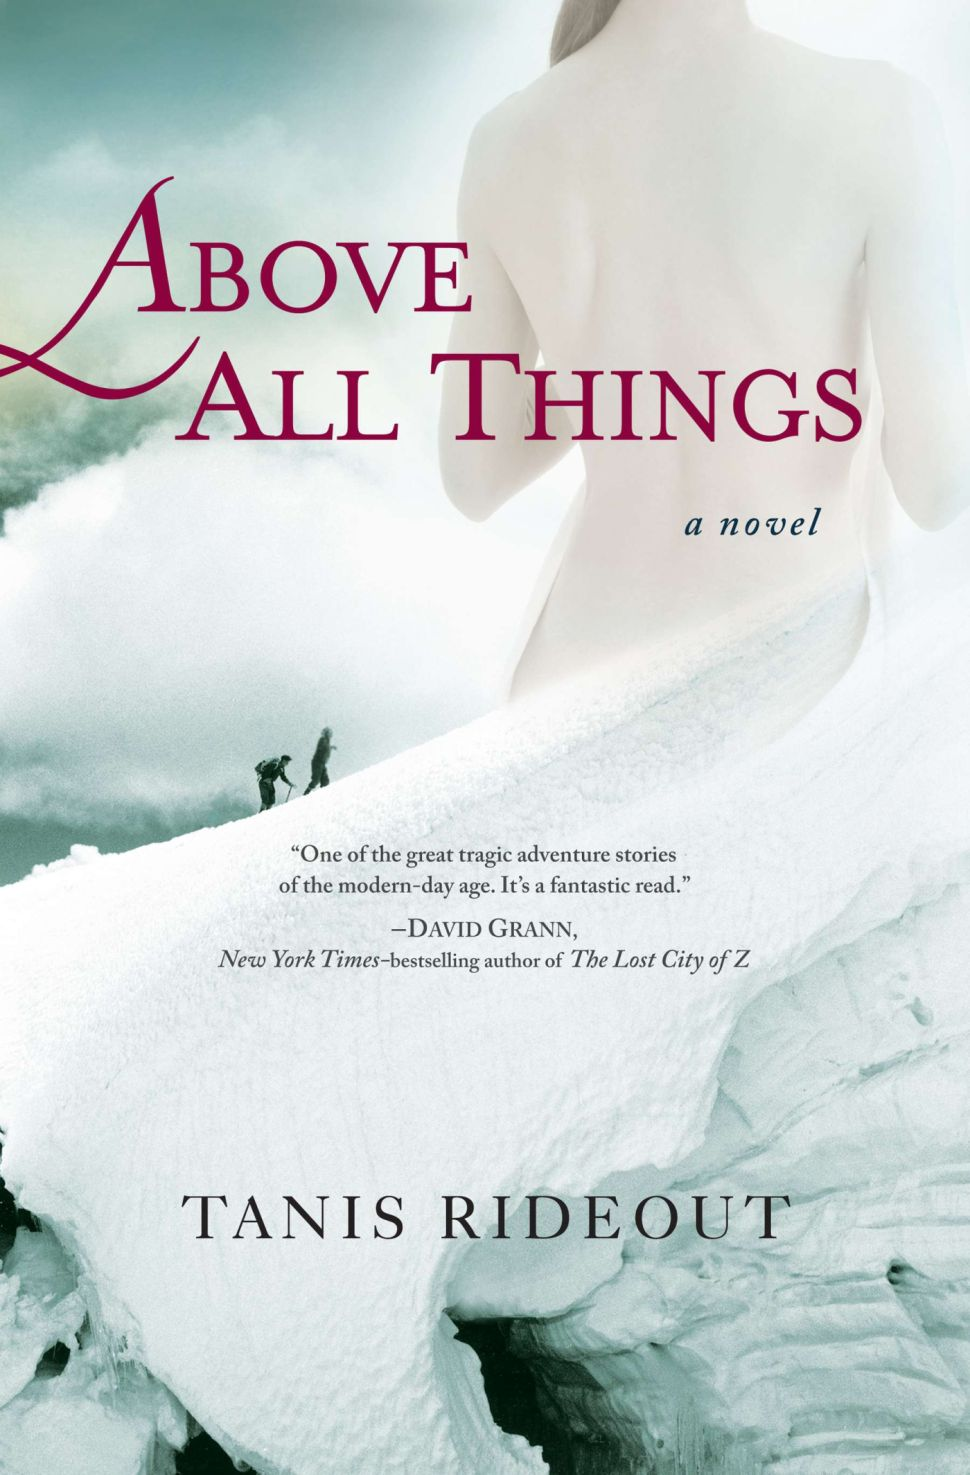 On the Page: Above All Things by Tanis Rideout